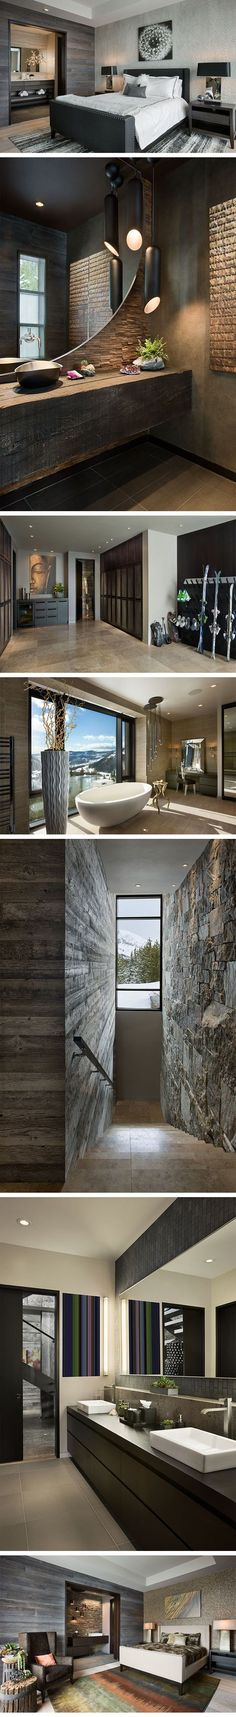 Cool master bathroom